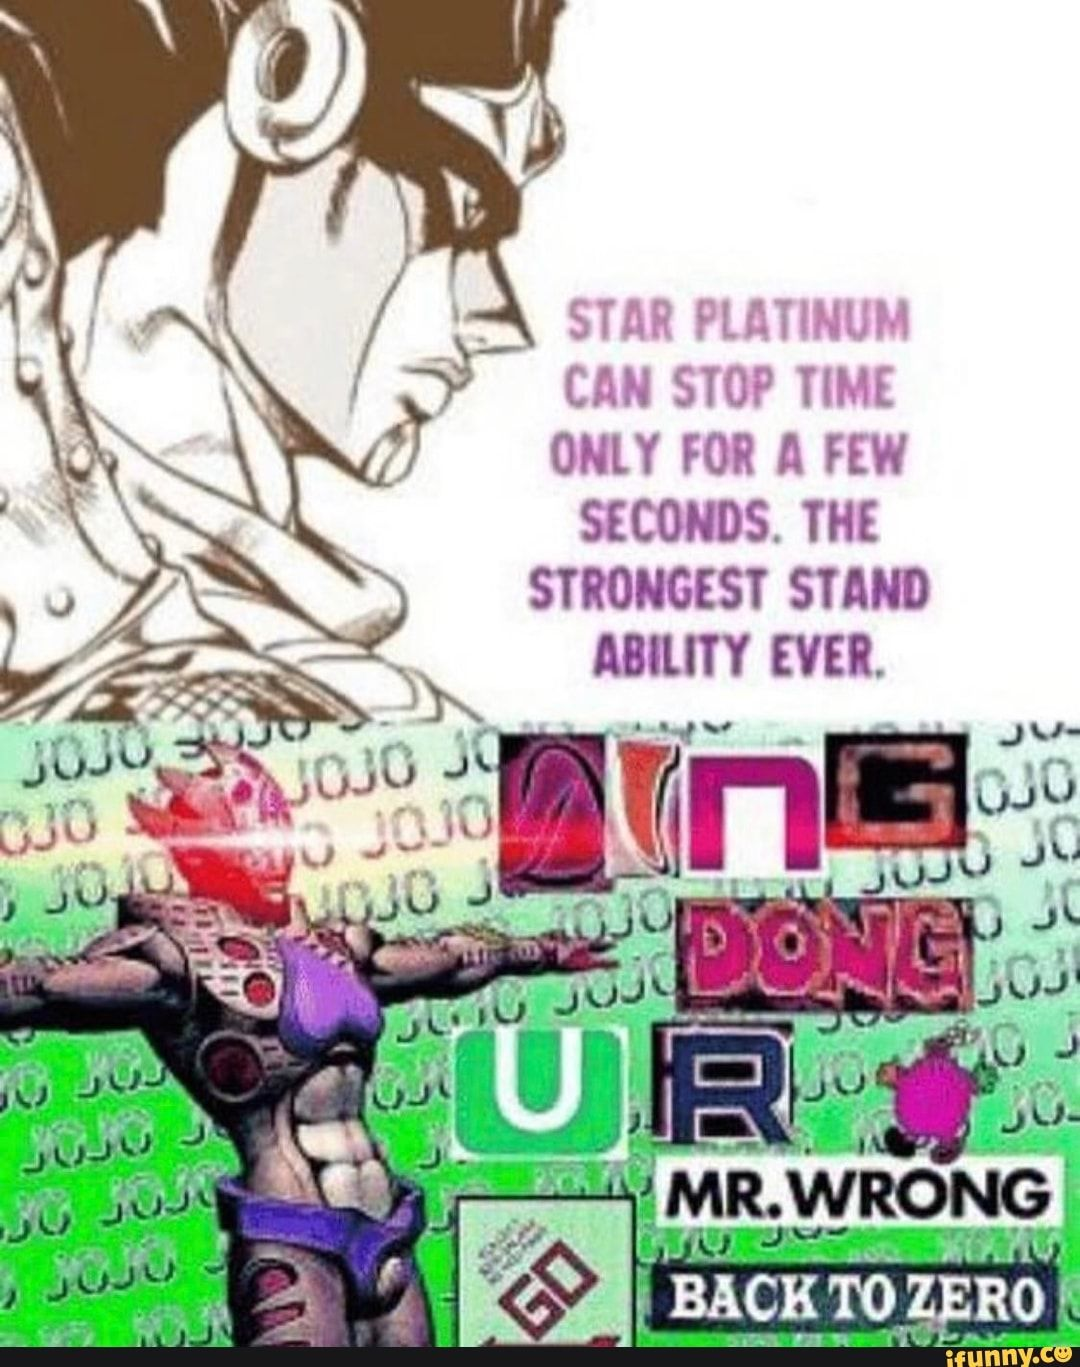 STAR PLATINUM CAN STOP TIME ONLY FOR A FEW SECONDS  THE